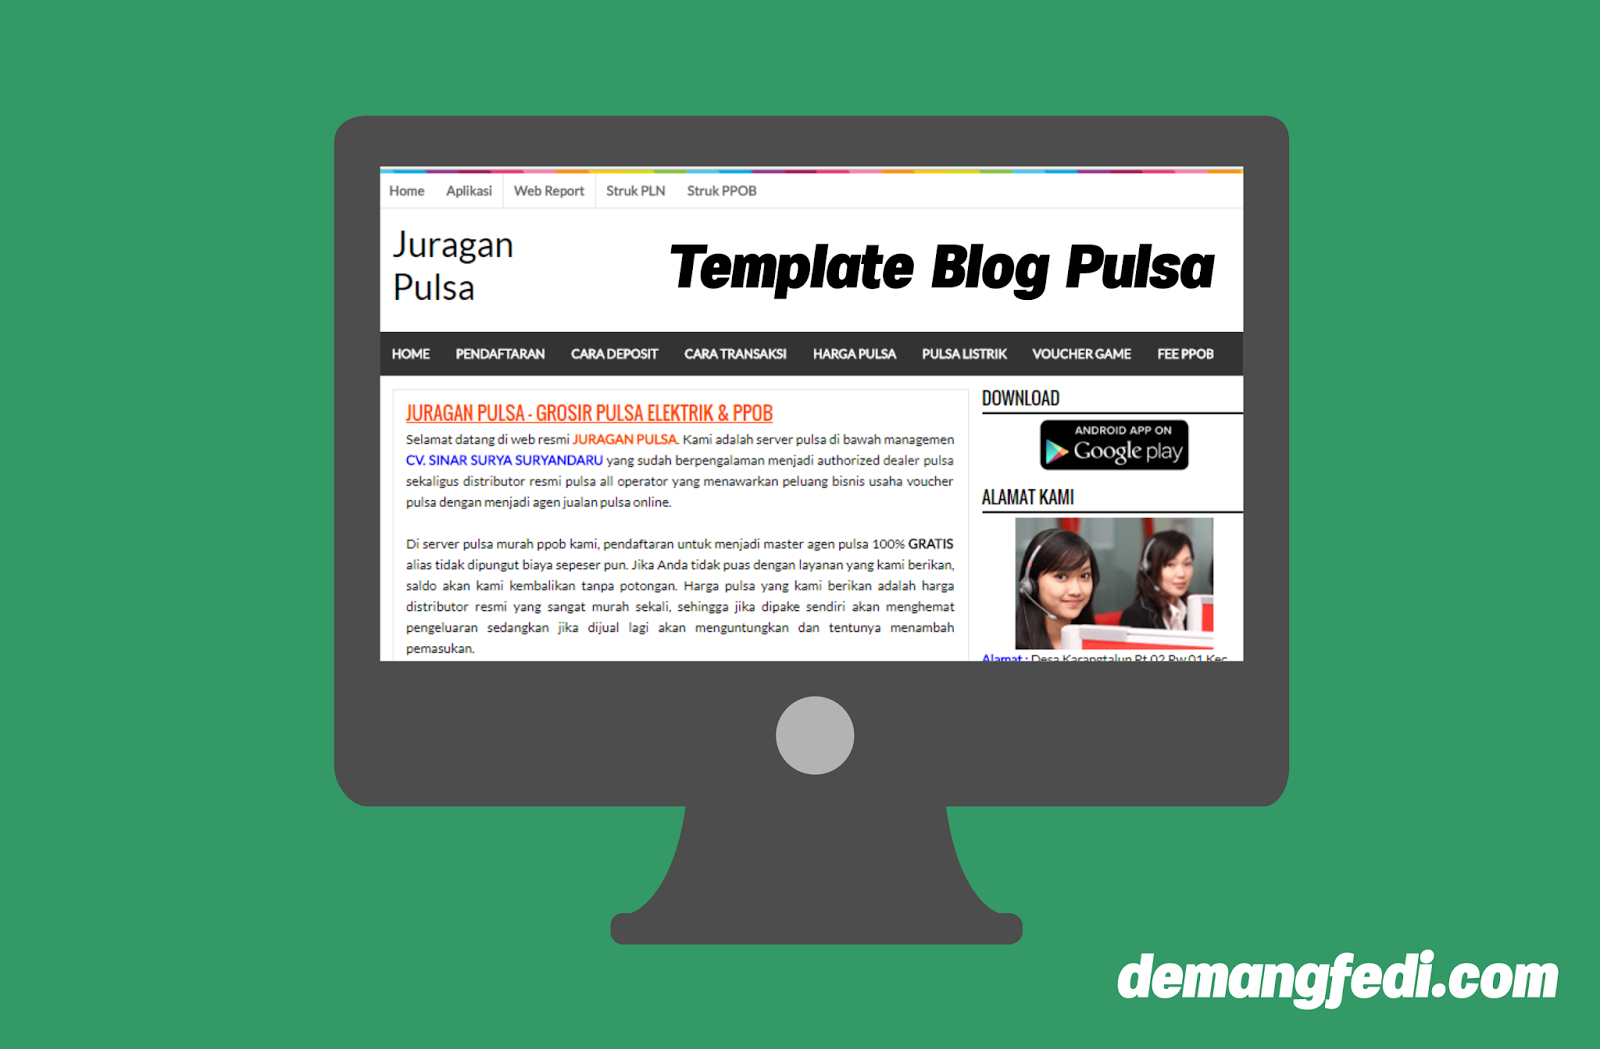 Template Blog Agen dan Server Pulsa